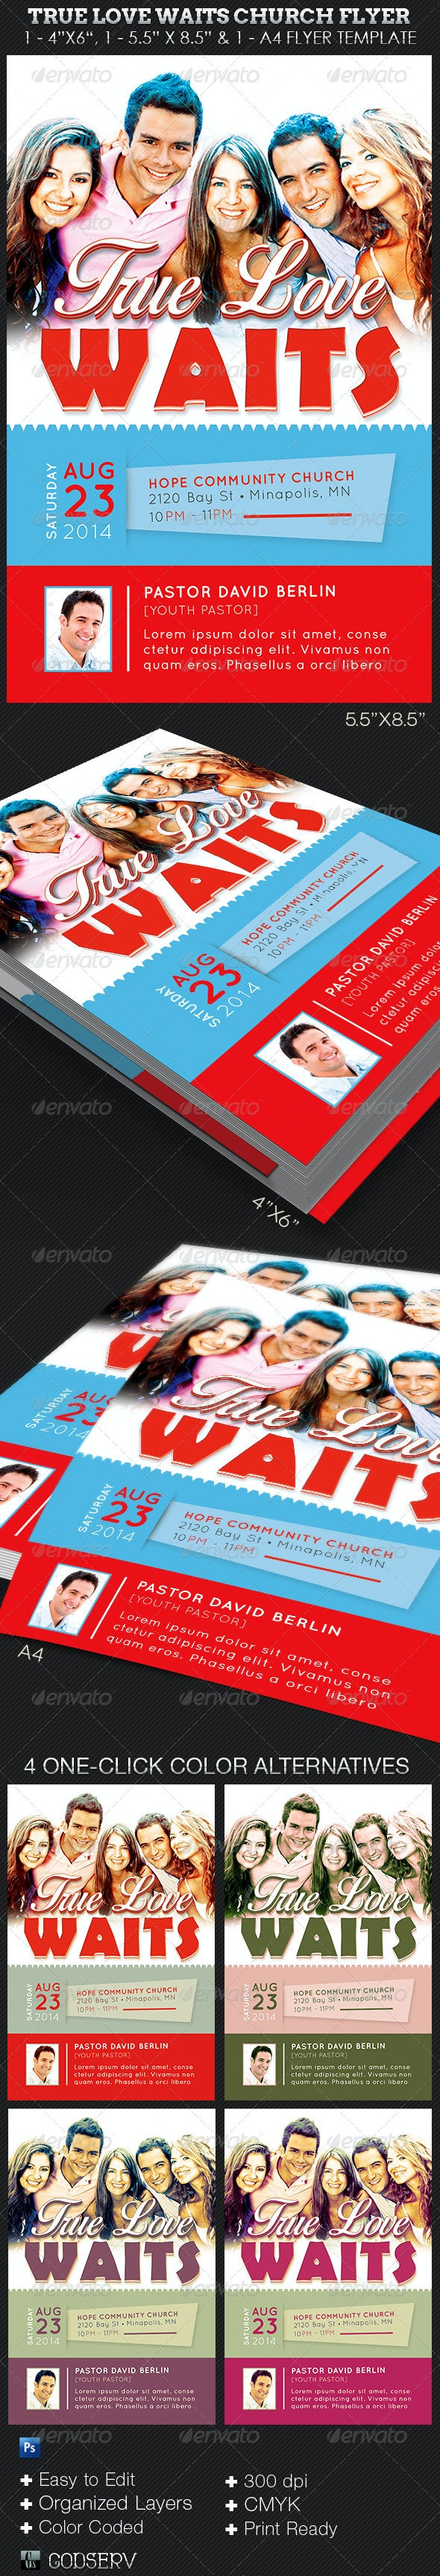 True Love Waits Church Flyer Template - Church Flyers